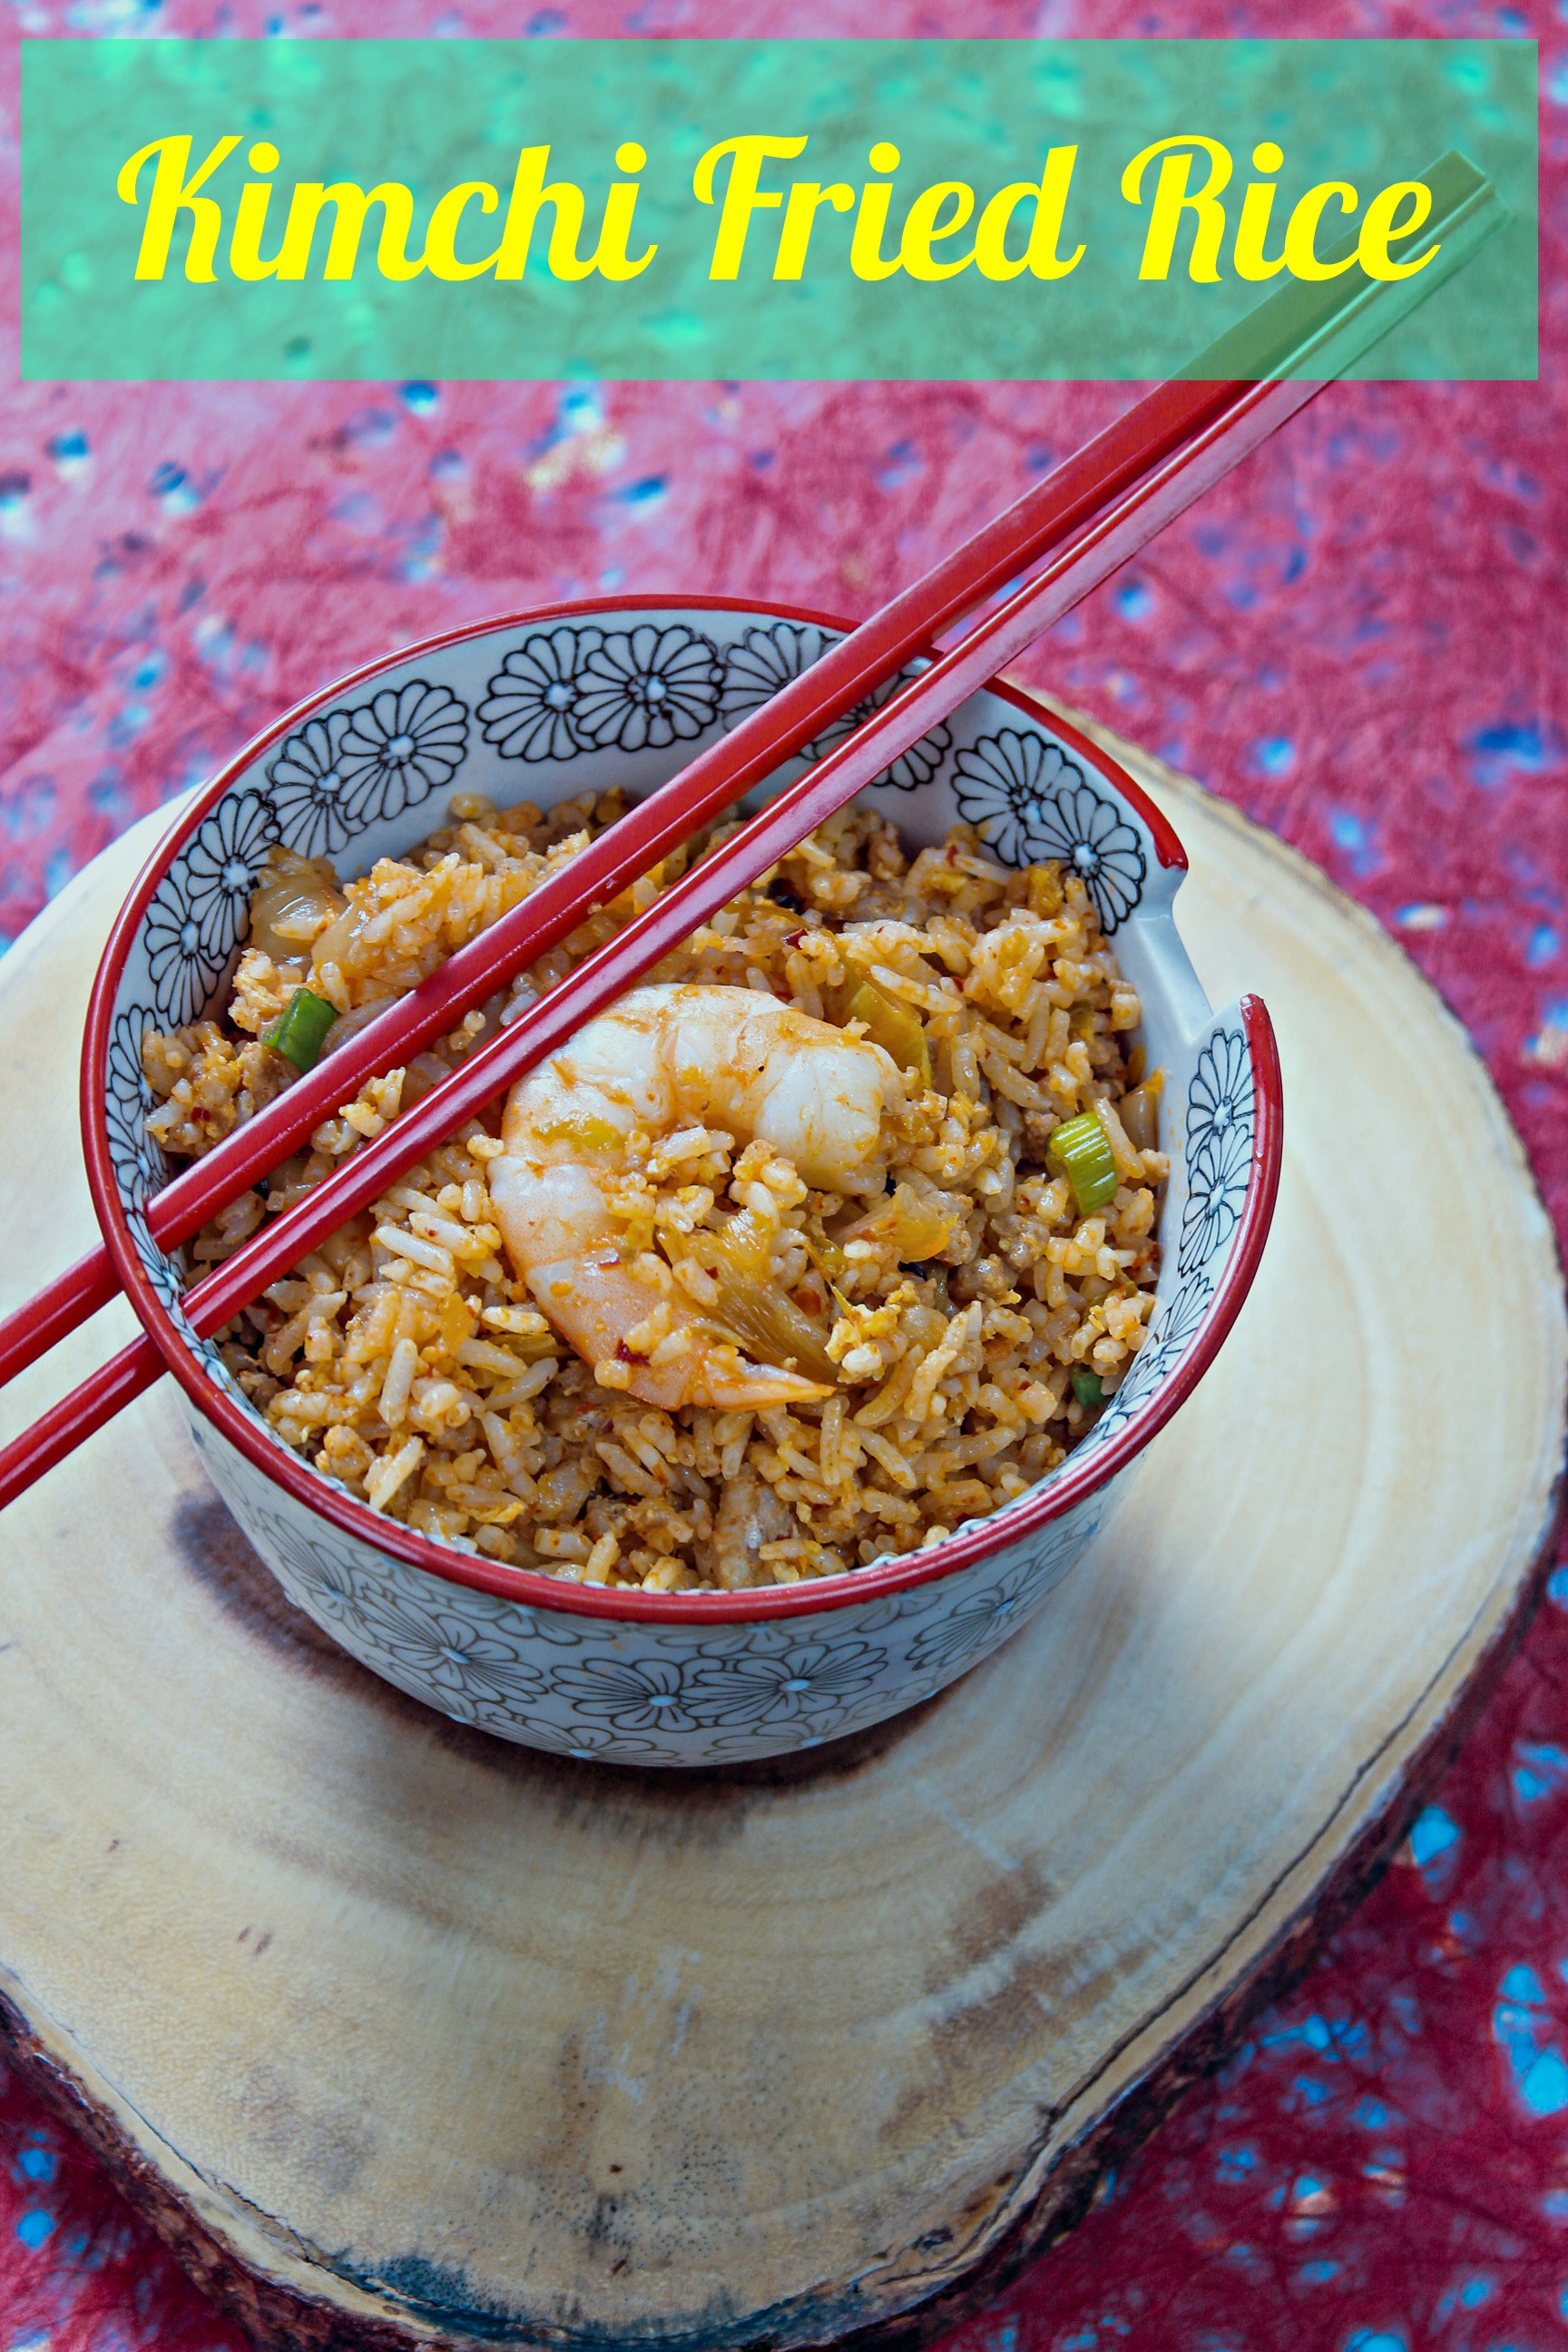 Kimchi Fried Rice - How to Make the PERFECT Fried Rice